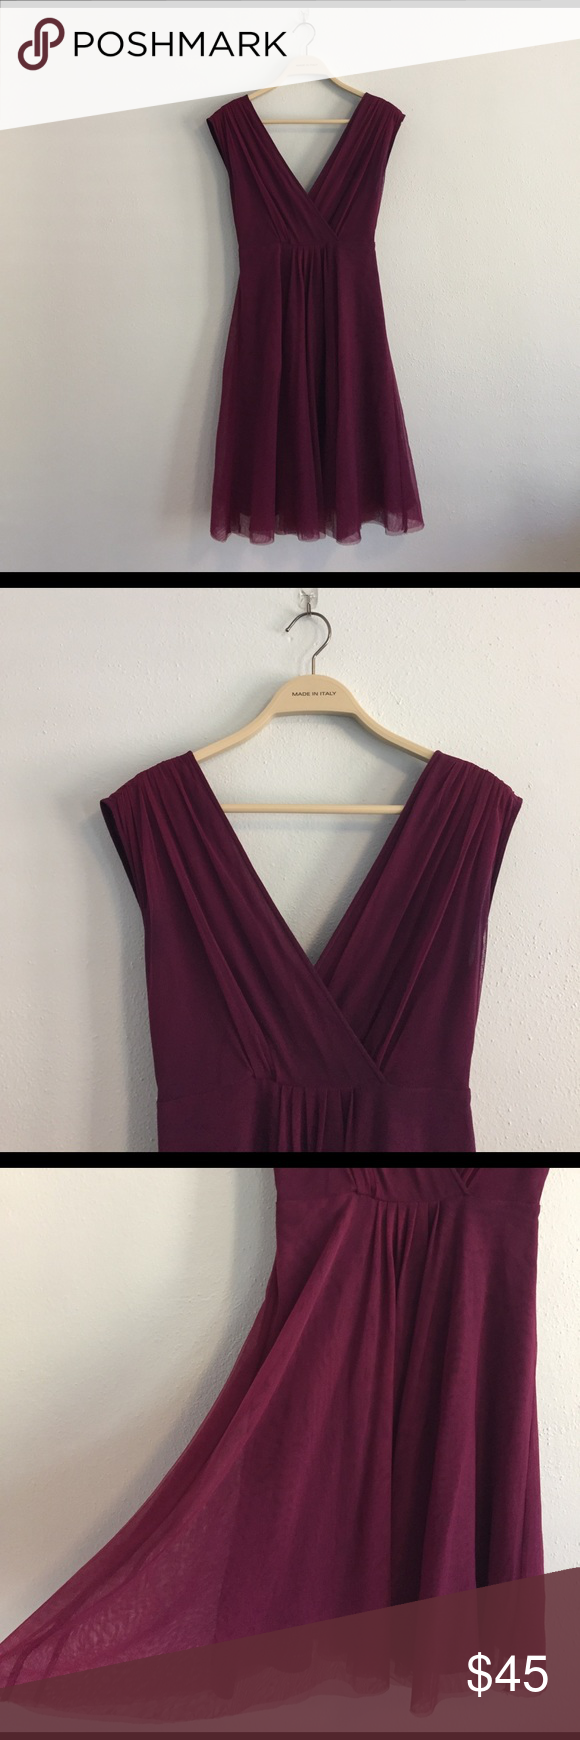 Antropologie- Moulinette Soeurs Purple Sheer Dress Perfect purple dress for a garden party or evening out. The outside shell is made out of nylon with a rayon lining and 100% silk trim. Light and comfortable wear for  any elegant occasion. Comes to right above the knee length. Anthropologie Dresses Mini